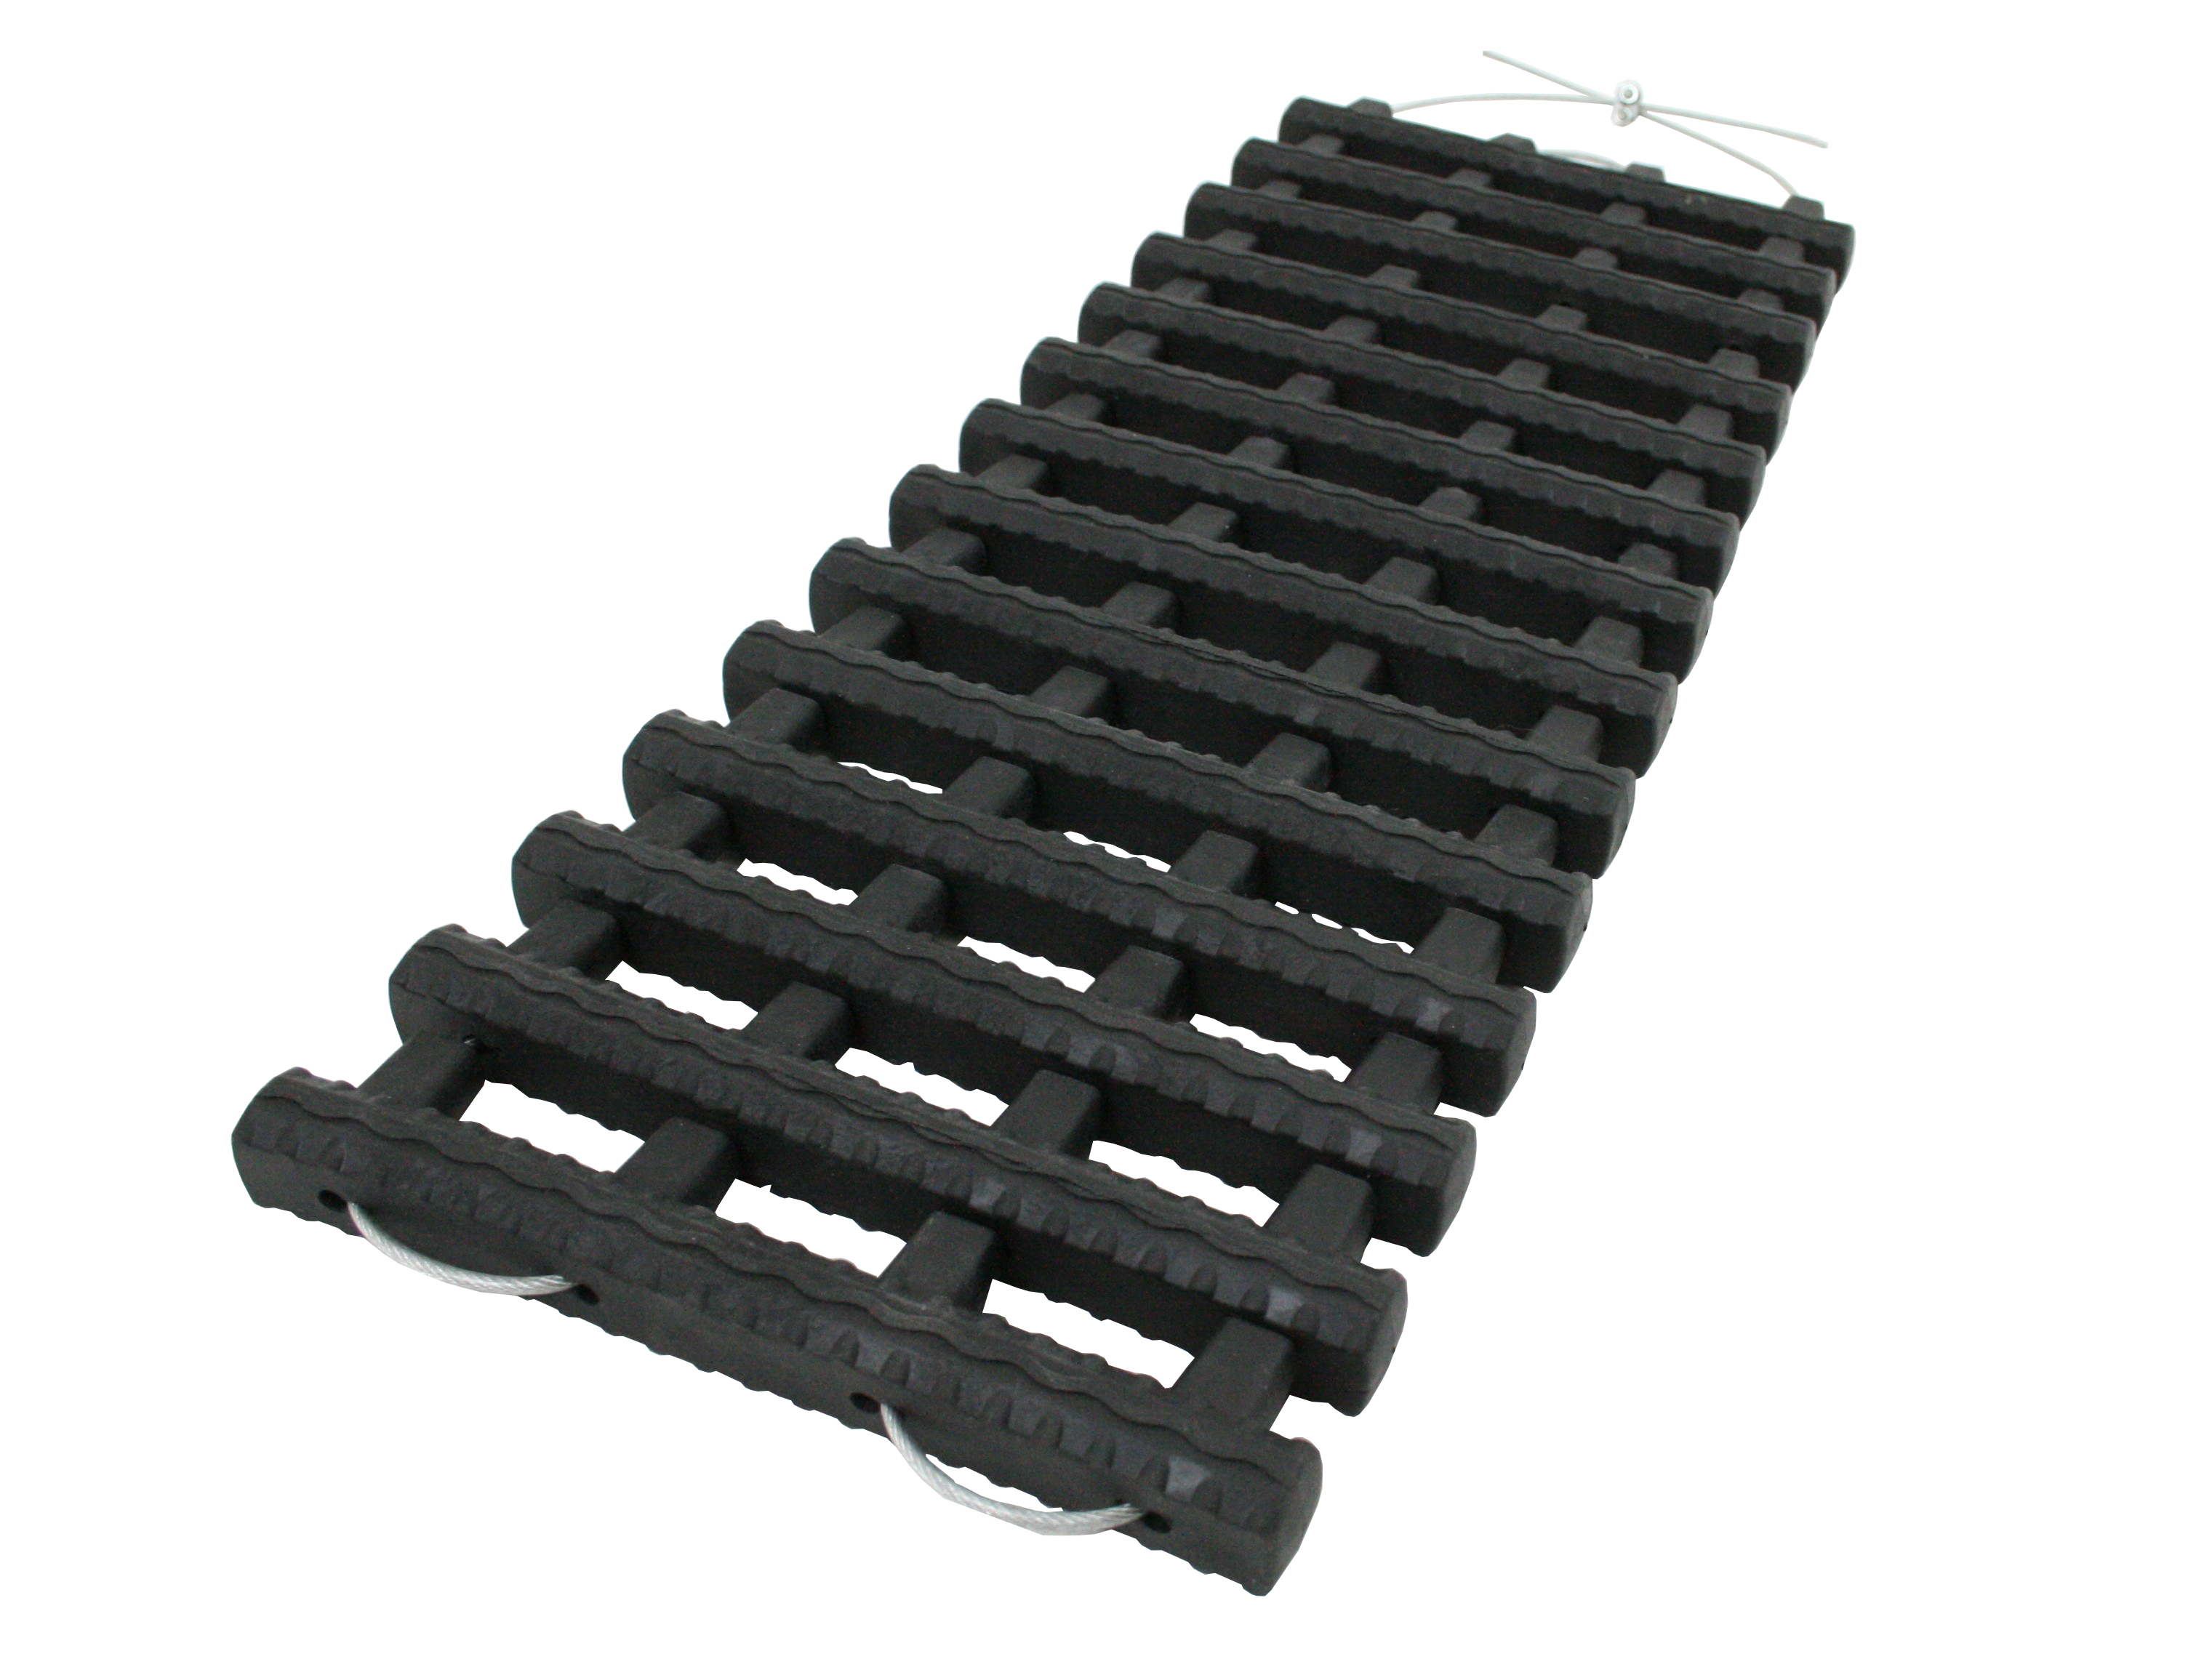 Tyre Grip Rubber Tpr Recovery Tracks Snow Mud Sand Rescue